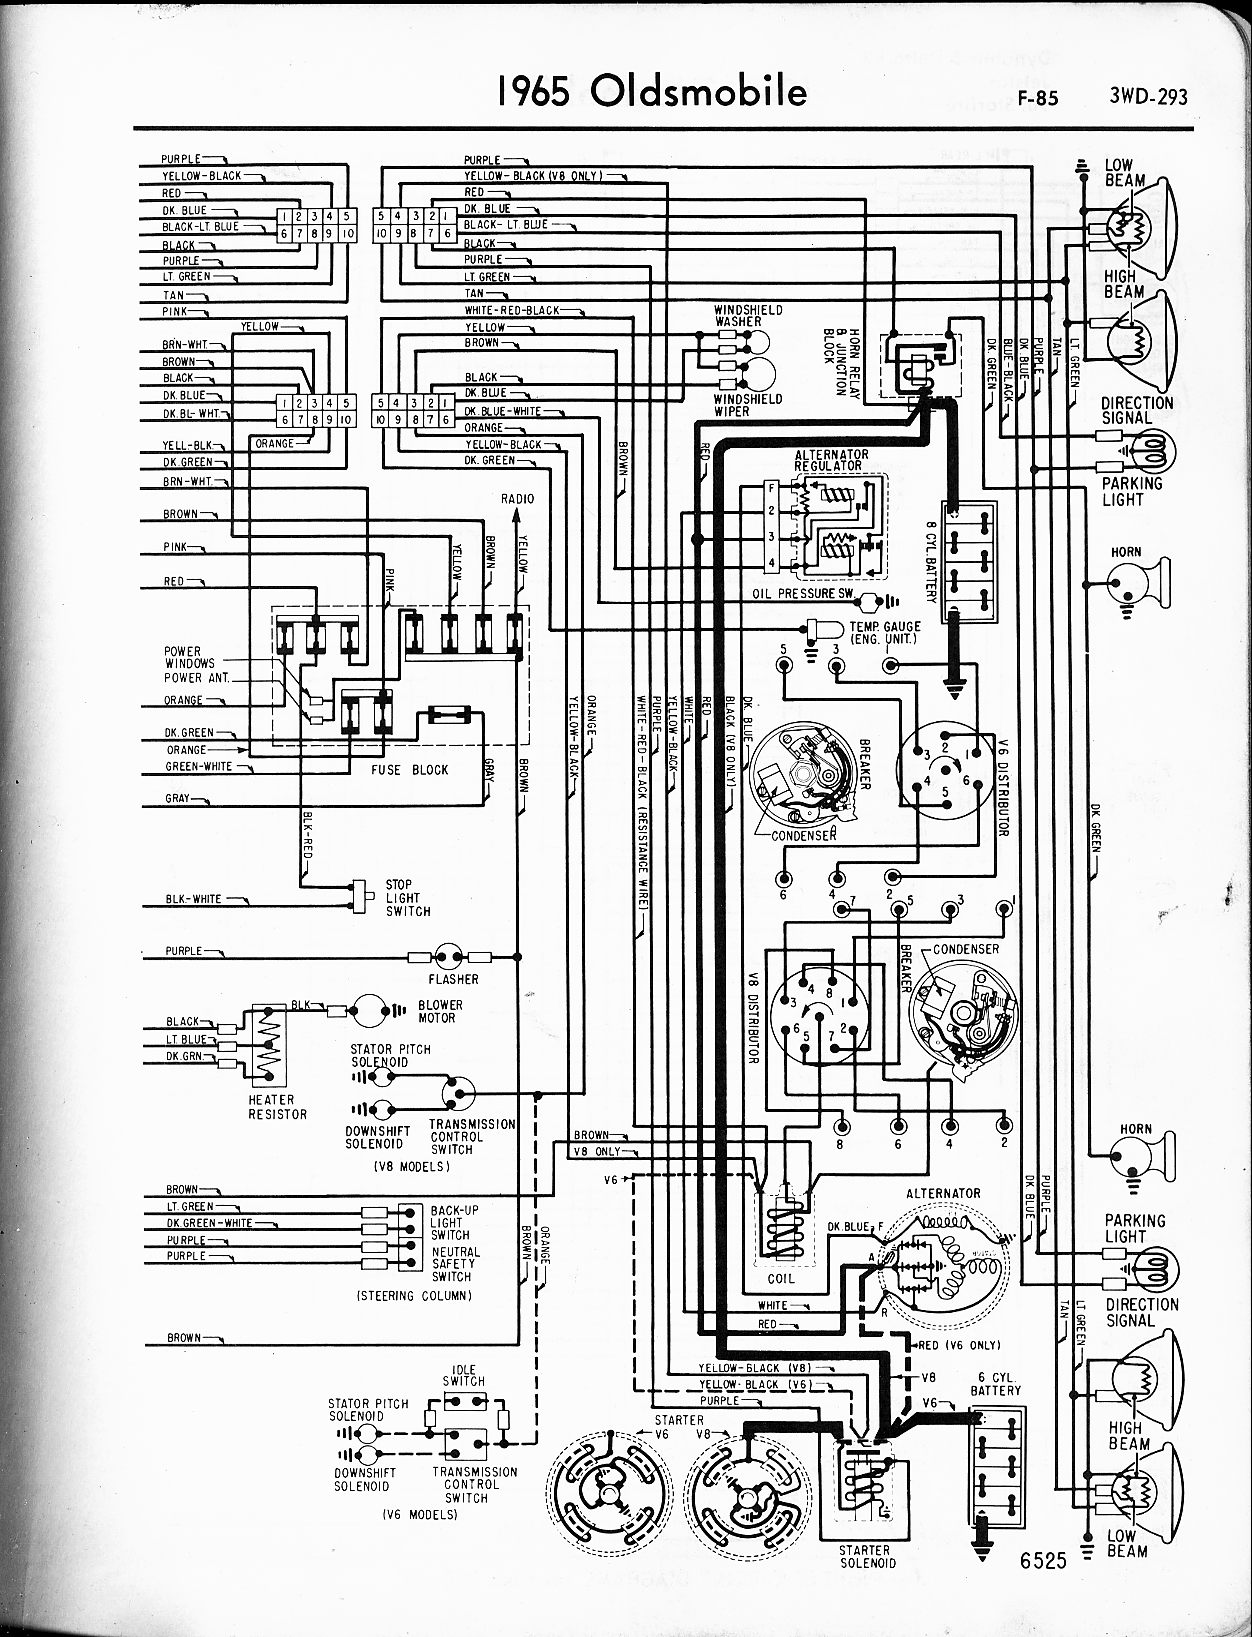 82 oldsmobile 98 regency wiring diagram oldsmobile wiring diagrams - the old car manual project 82 corvette fuel gauge wiring diagram #6